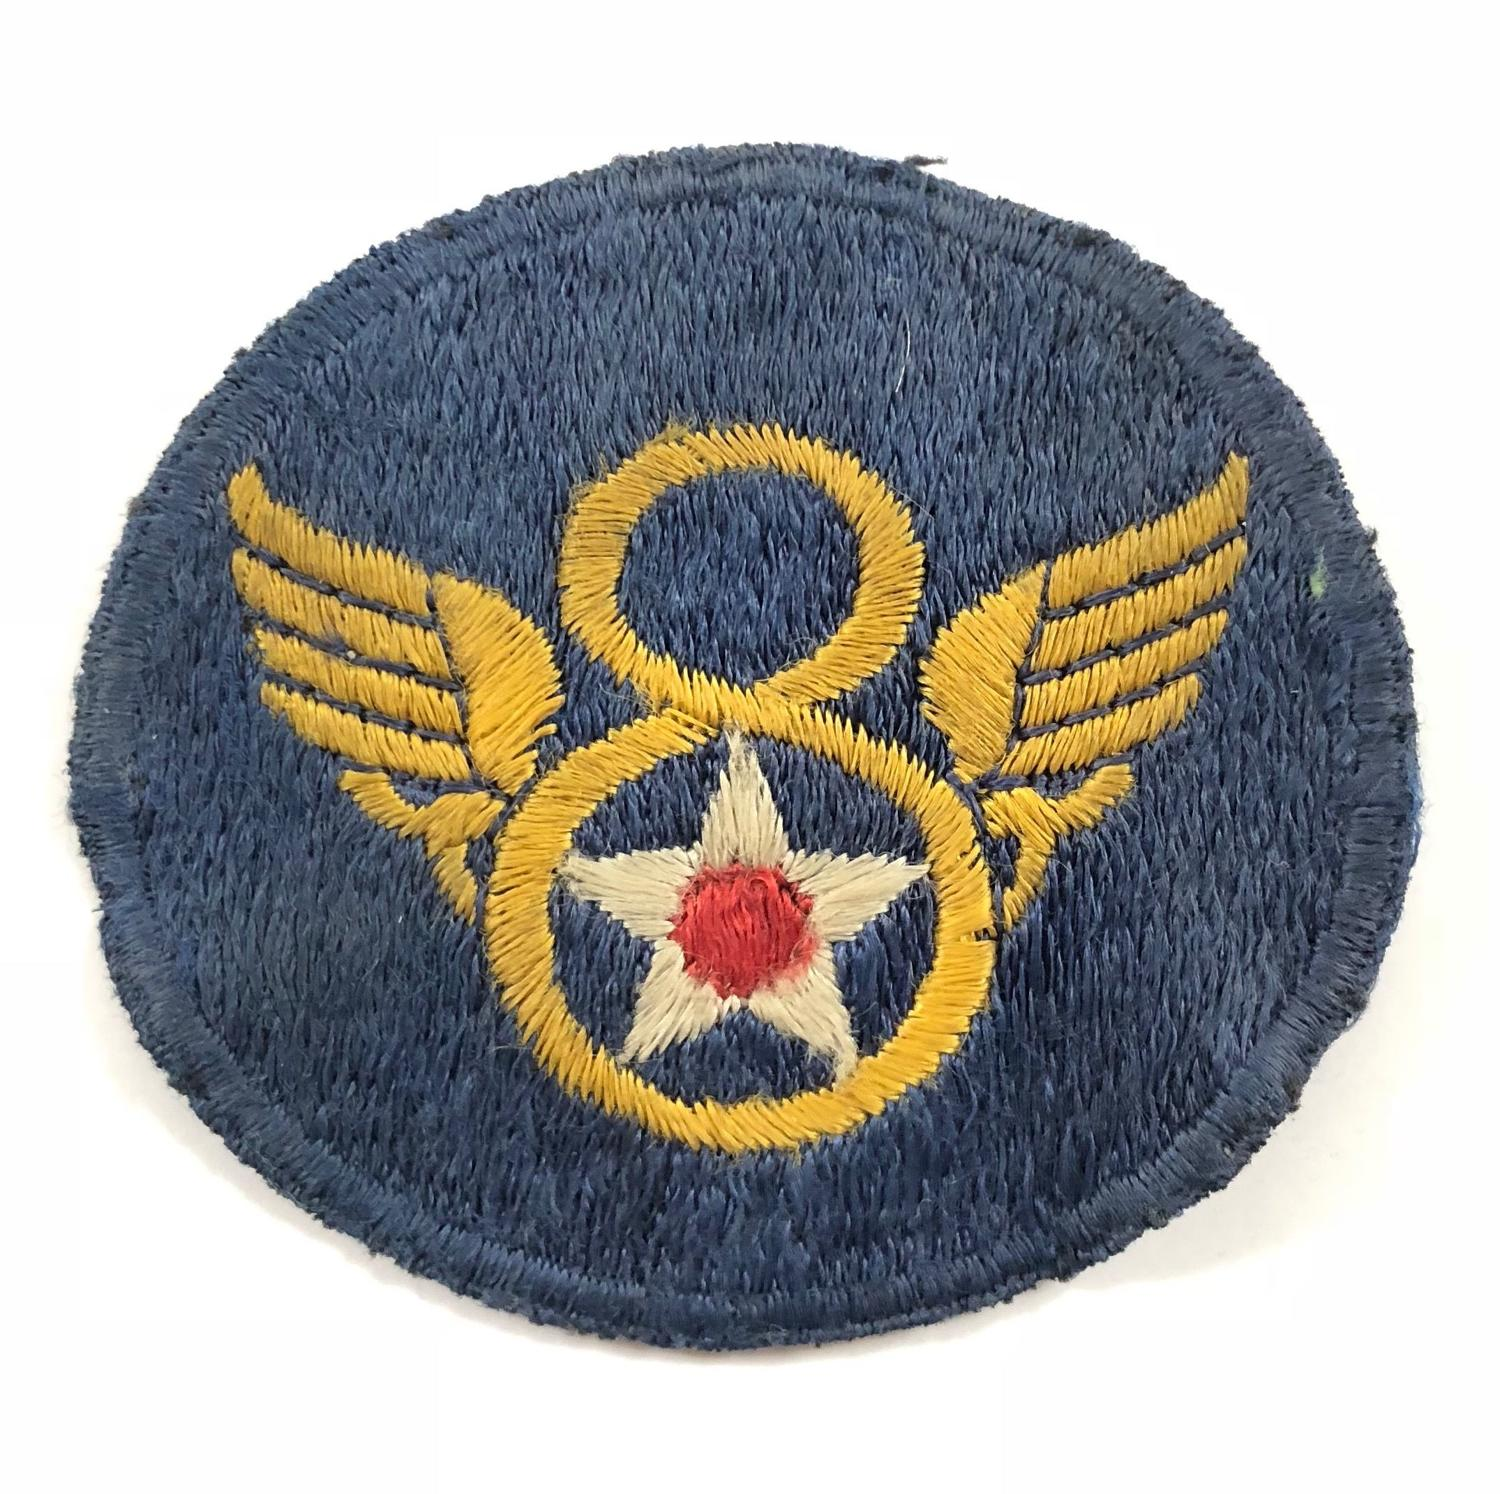 WW2 US 8th Airforce UK Made Shoulder Patch Badge.